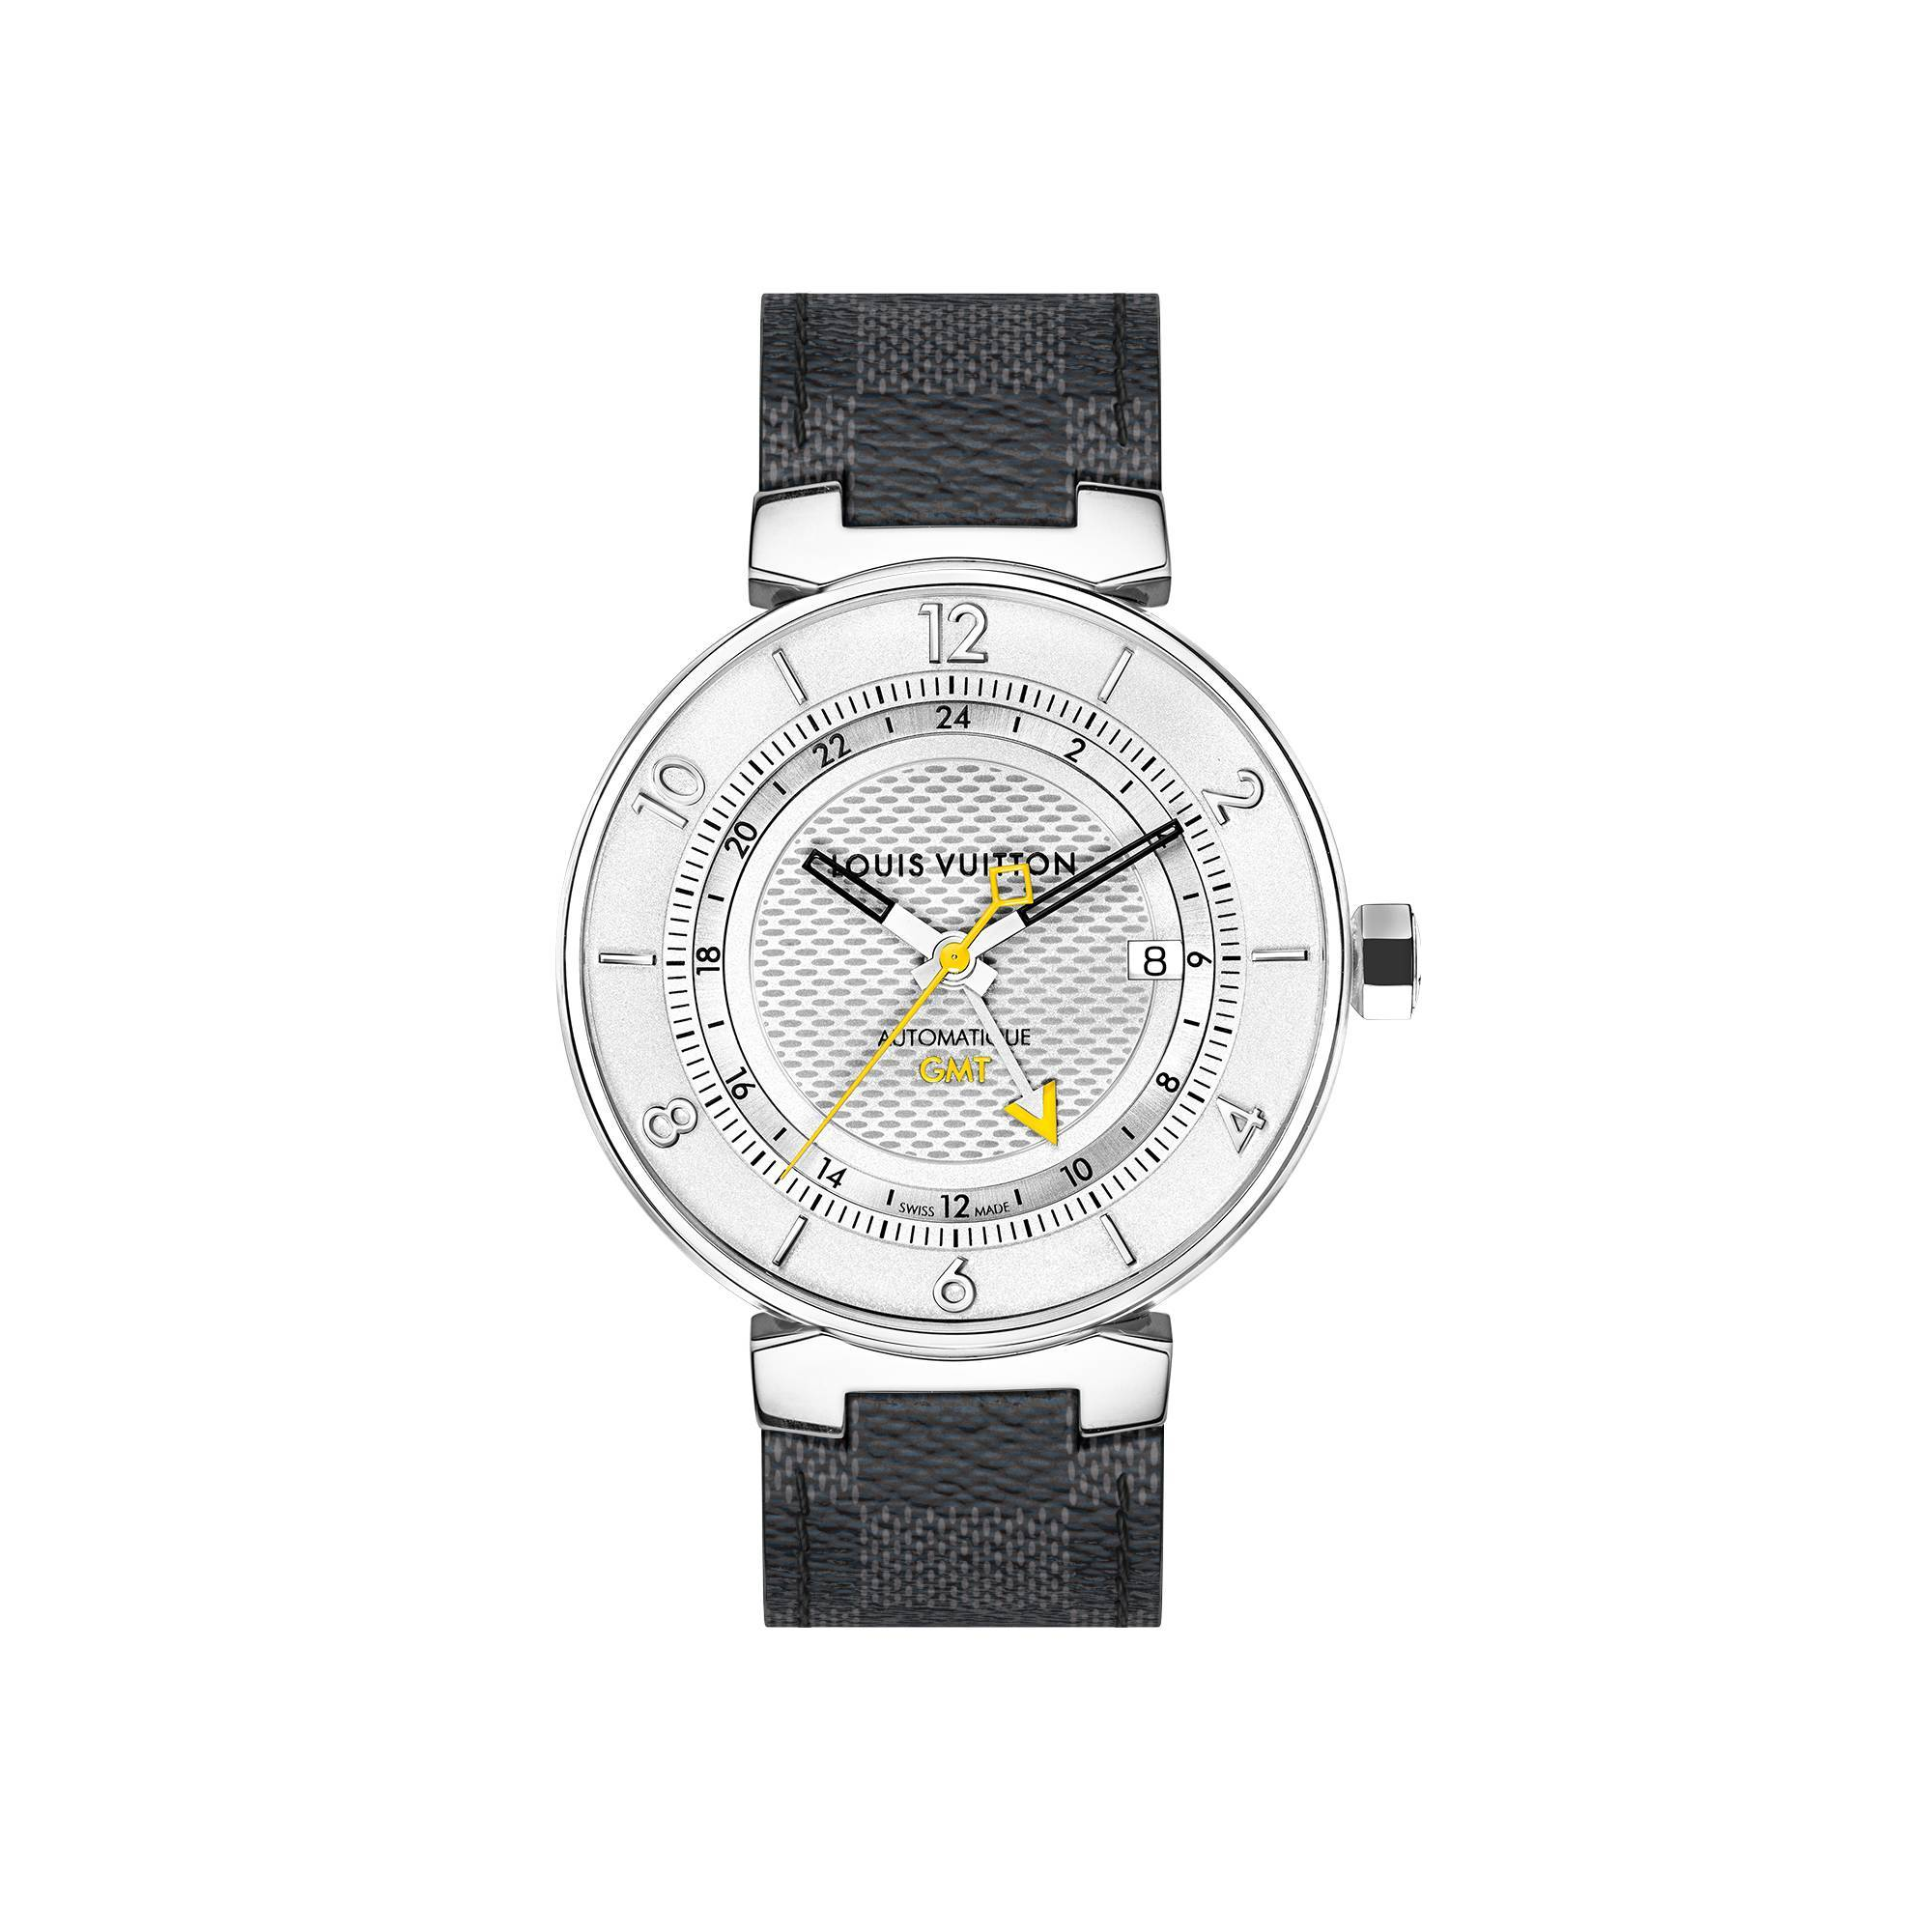 10 Timepieces by Louis Vuitton for Men with a Luxury Lifestyle Louis Vuitton 10 Timepieces by Louis Vuitton for Men with a Luxury Lifestyle 10 Timepieces by Louis Vuitton for Men with a Luxury Lifestyle 3